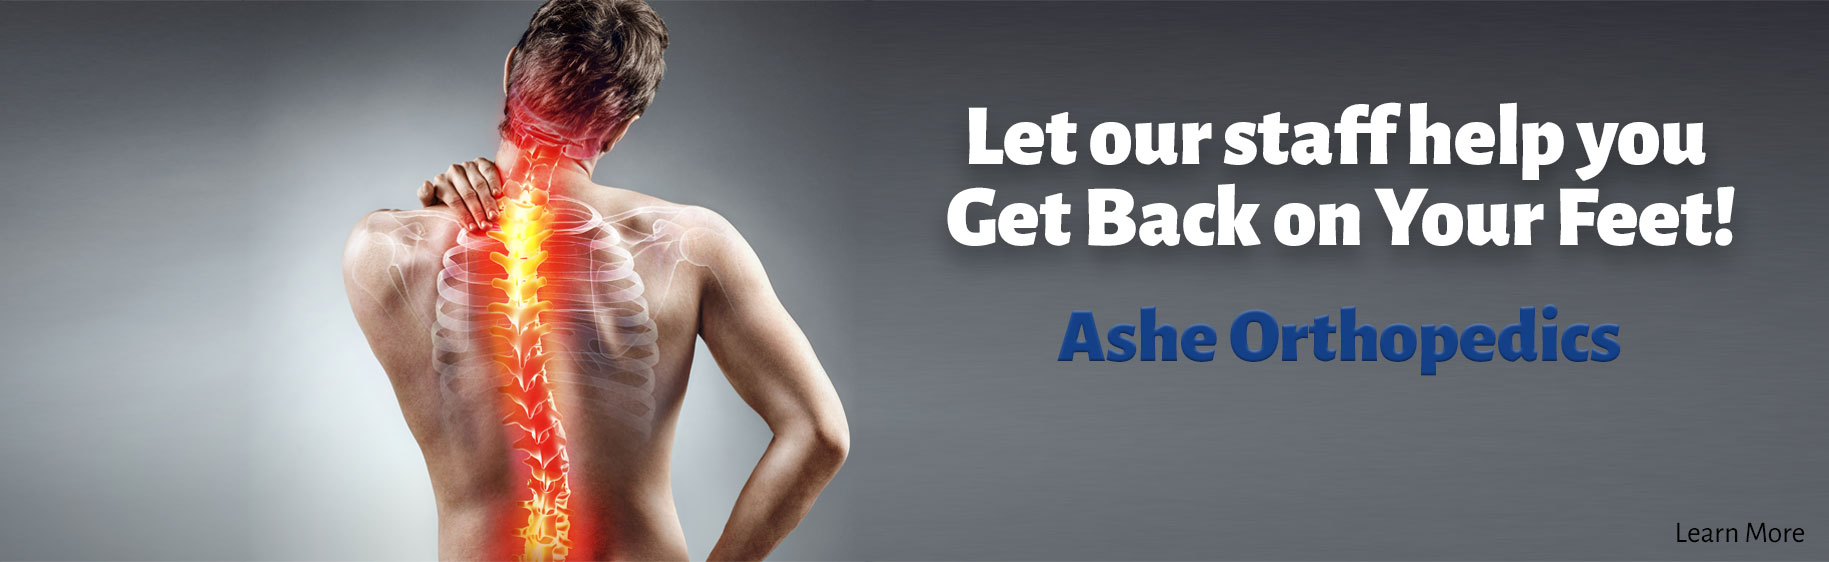 Let our staff help you get back on your feet! Ashe Orthopedics.